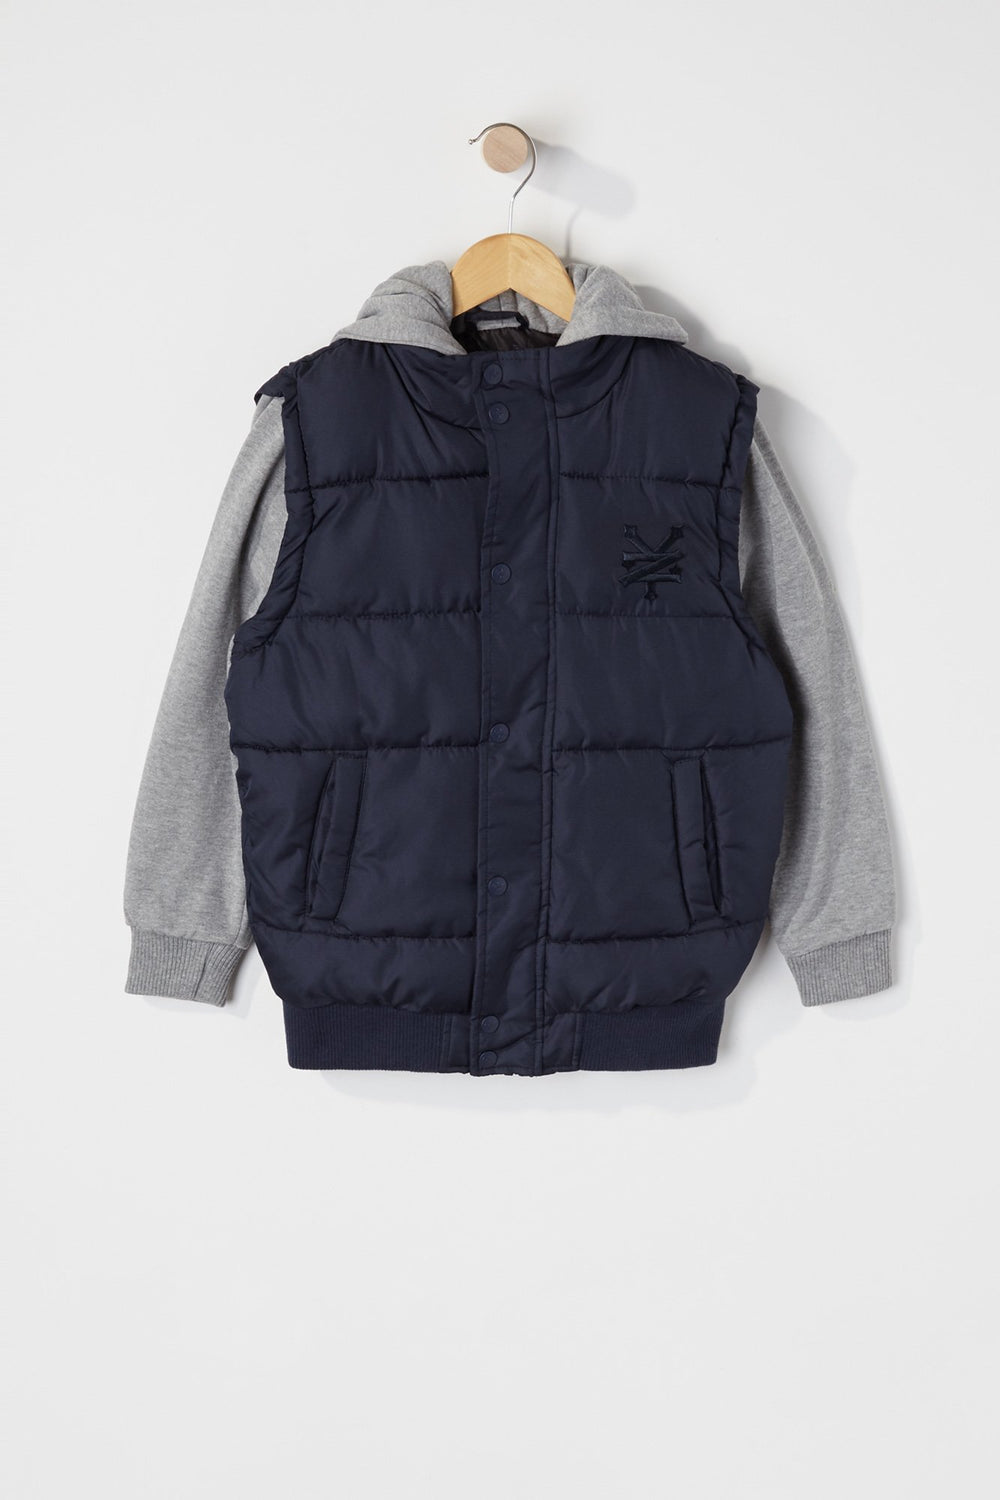 Zoo York Boys Hooded Puffer Vest Navy